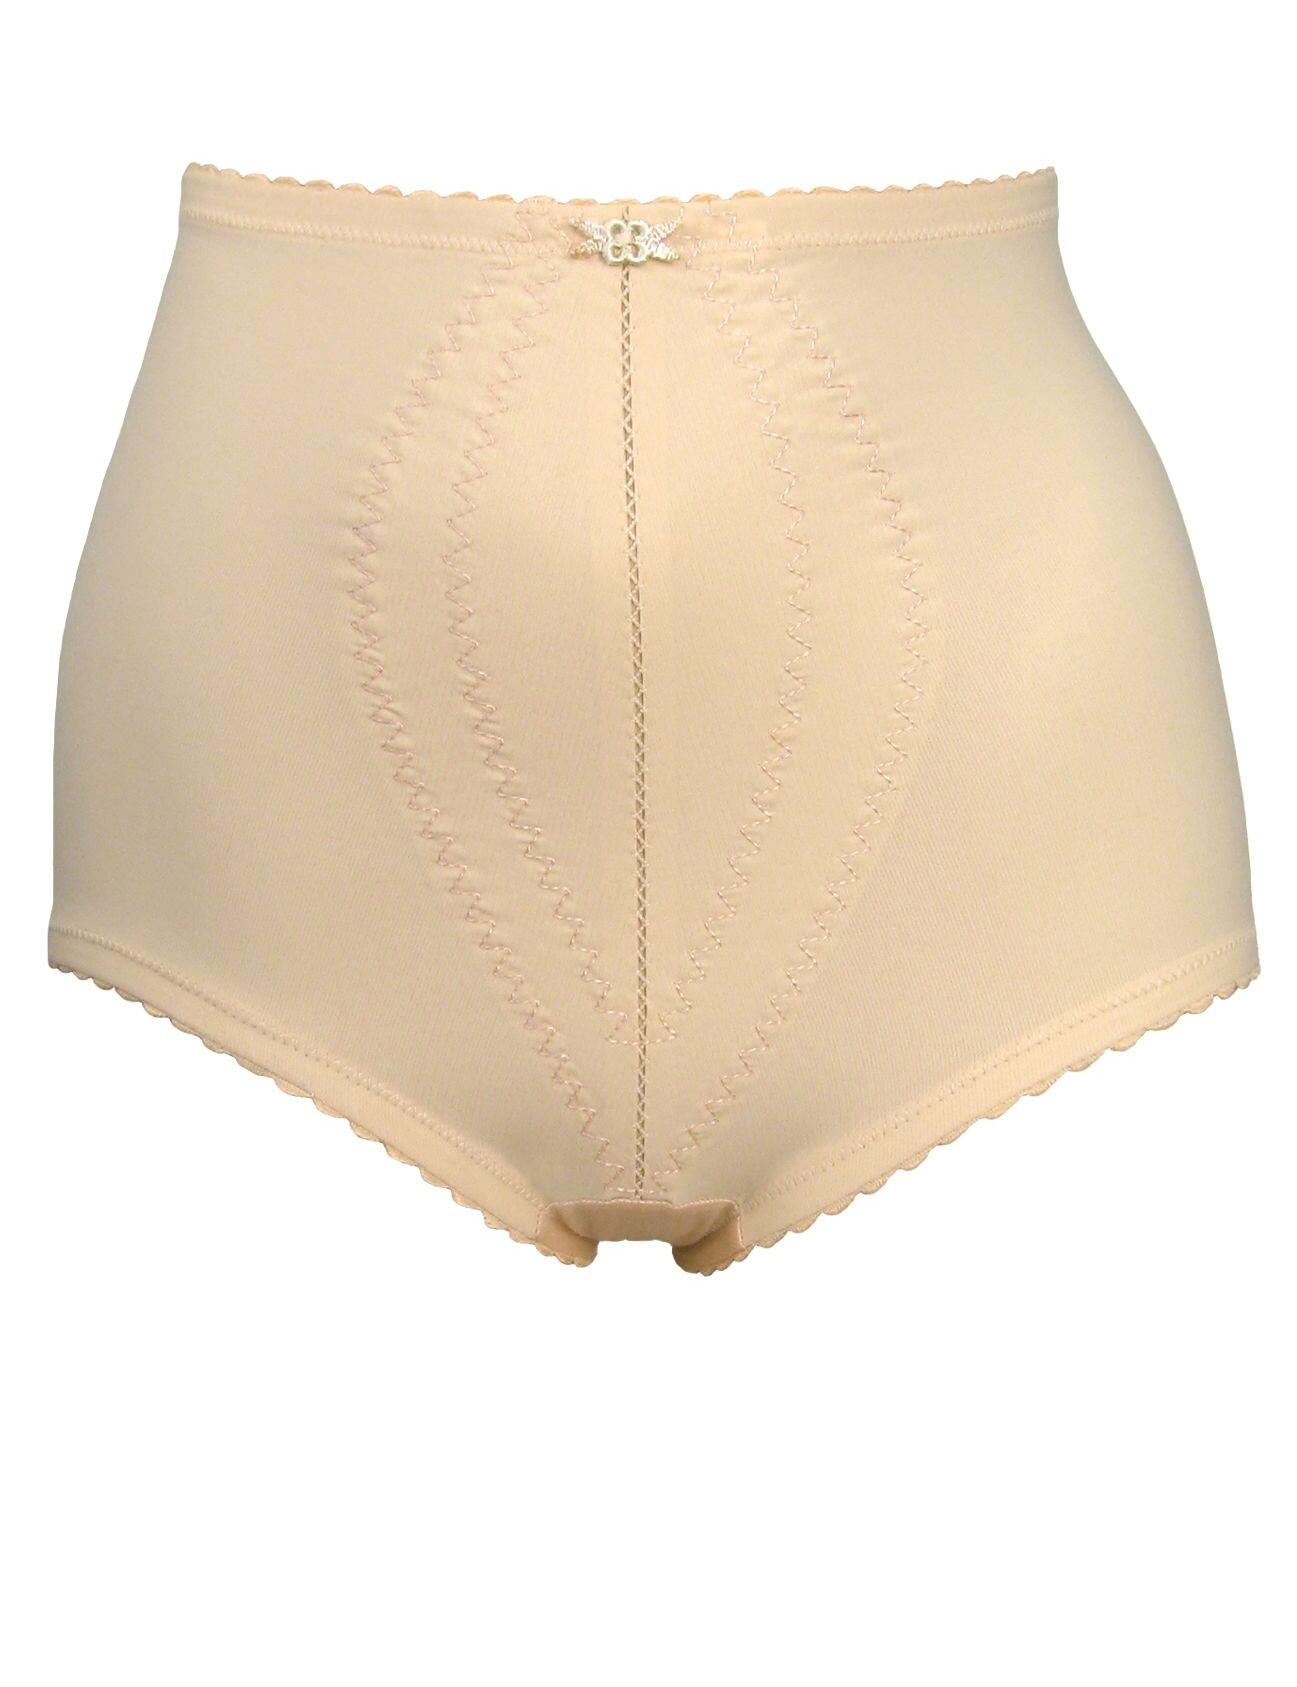 Playtex I Can't Believe it's a Girdle:Firm Control Brief P2522 - Beige